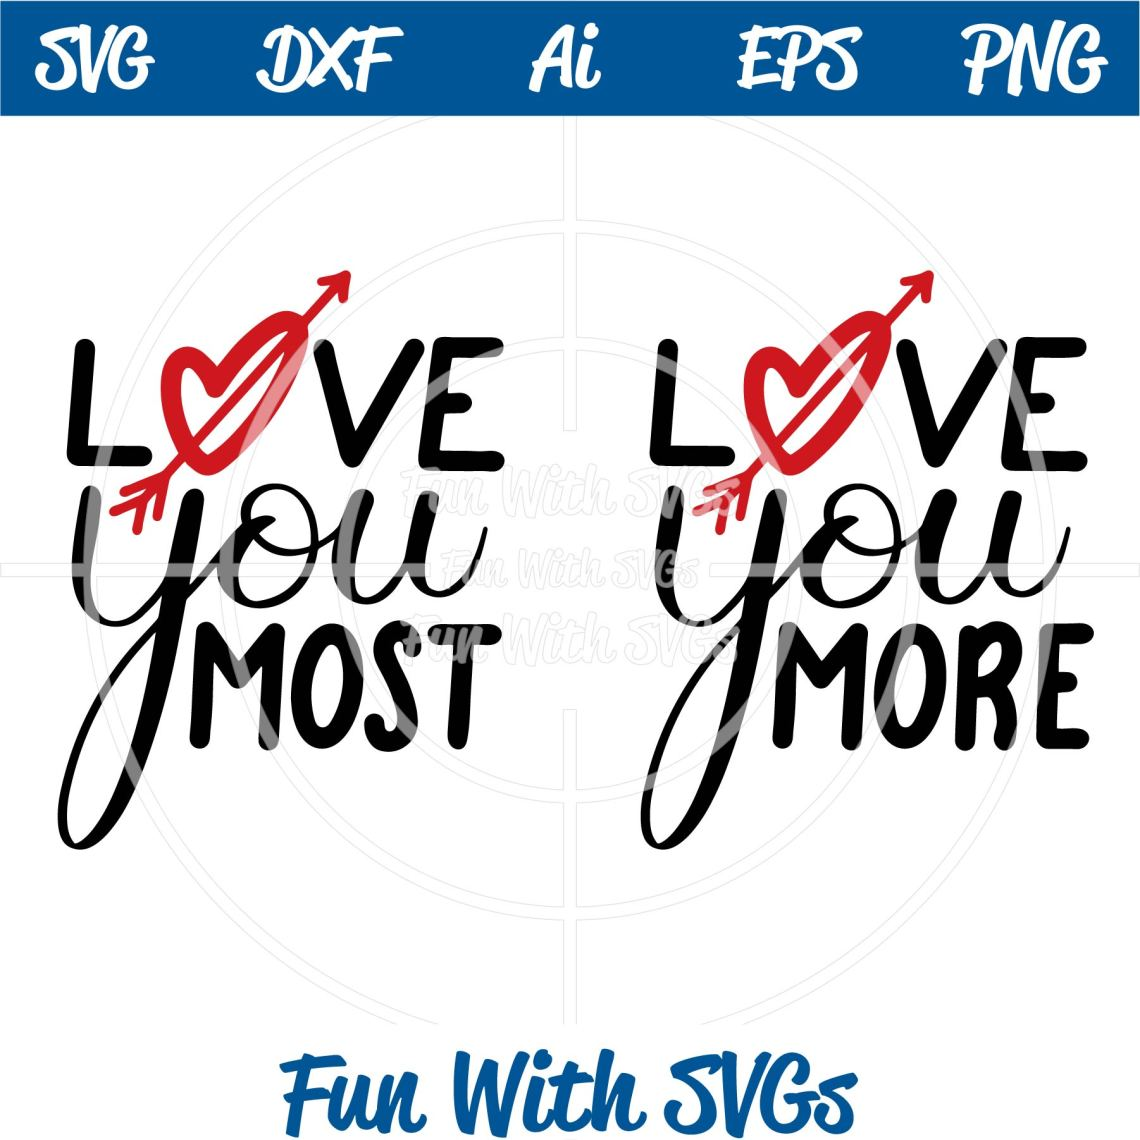 Download Love You More, Love You Most SVG Cut Files ~ Fun With SVGs